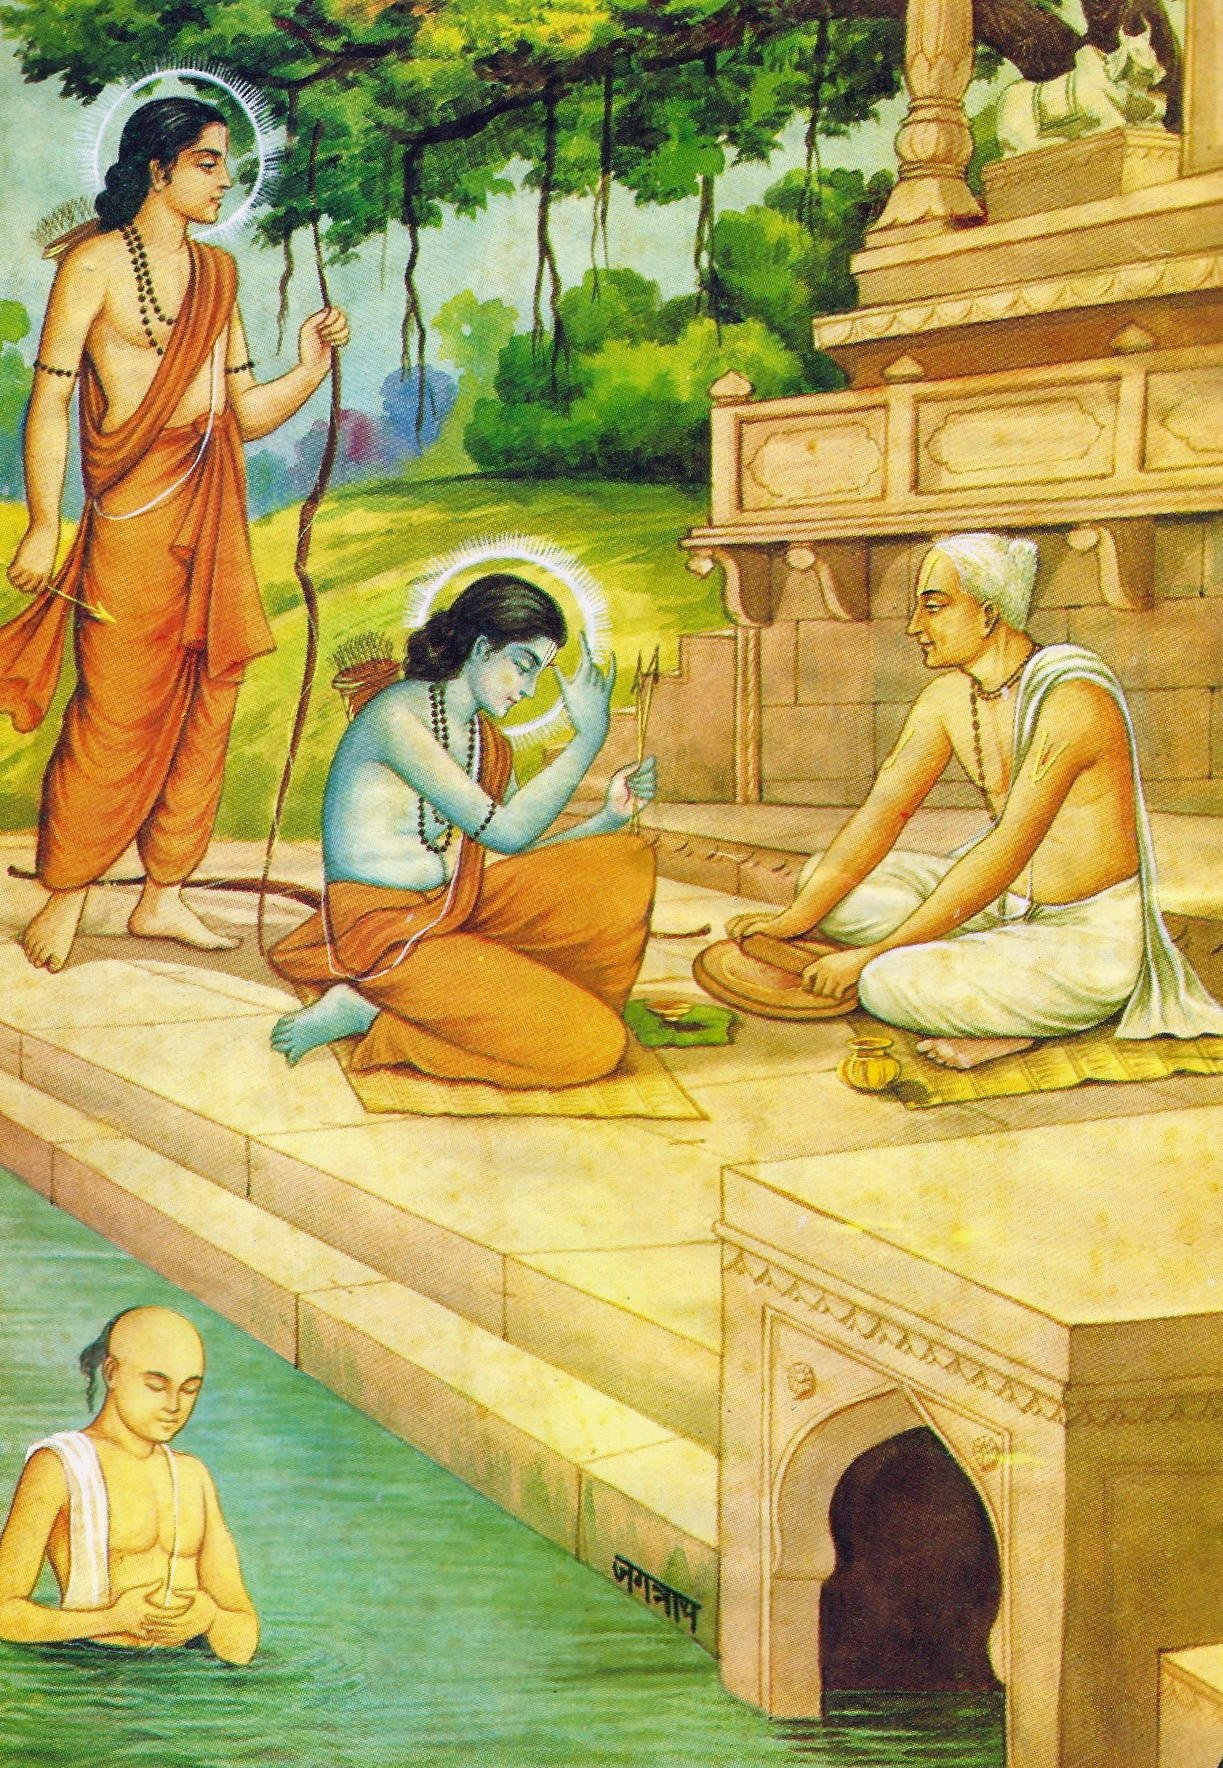 Tulsidas getting darshan of Sriram and Lakshman